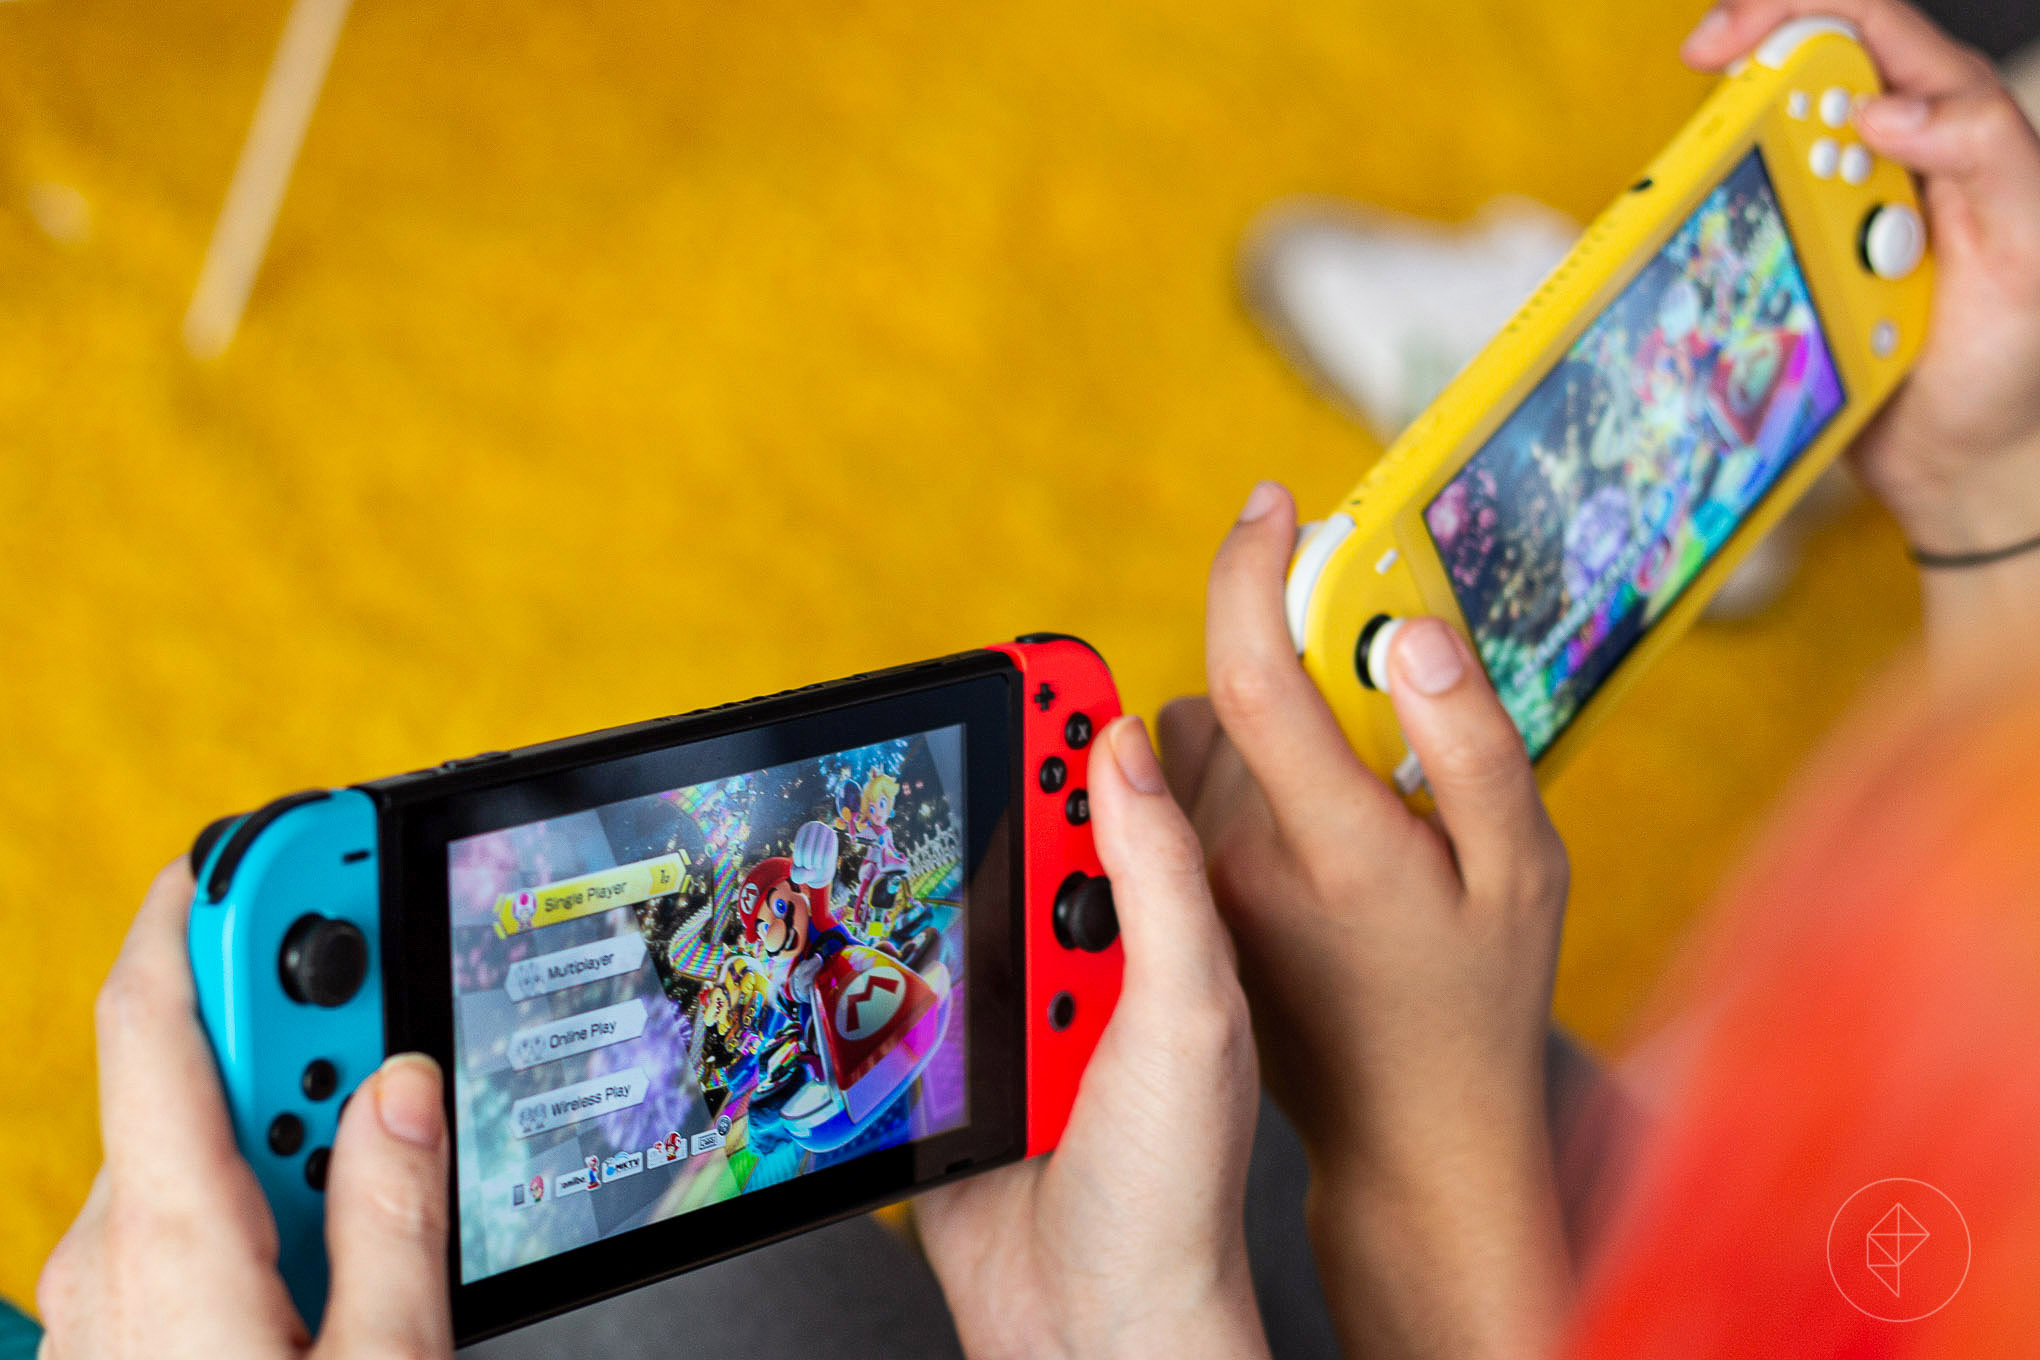 Nintendo files lawsuits in crackdown against Switch hackers